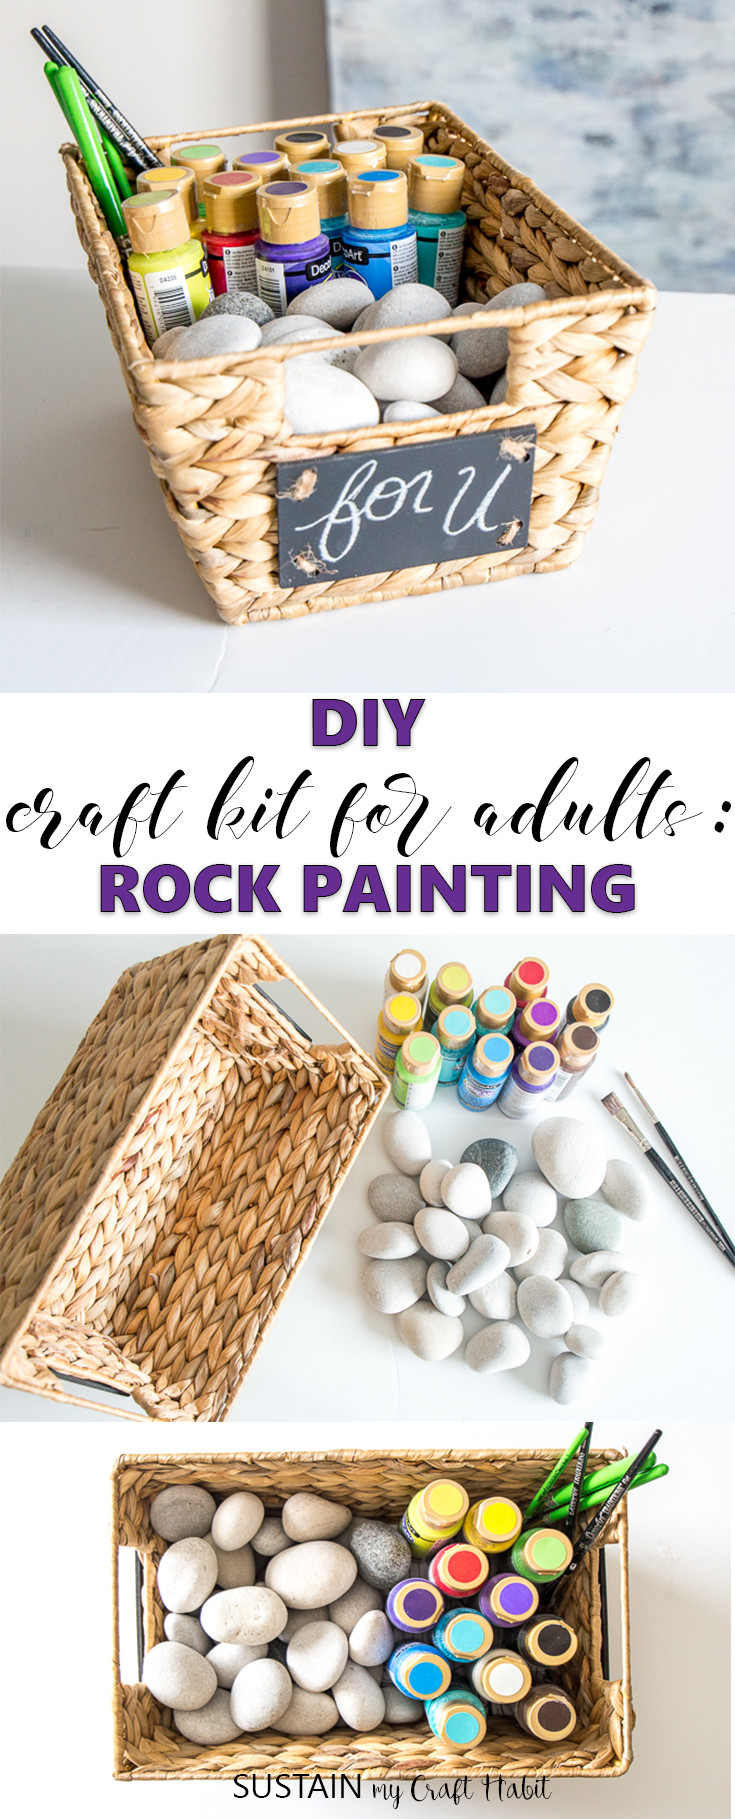 DIY Kits For Adults  Make your Own Craft Kit for Adults Rock Painting